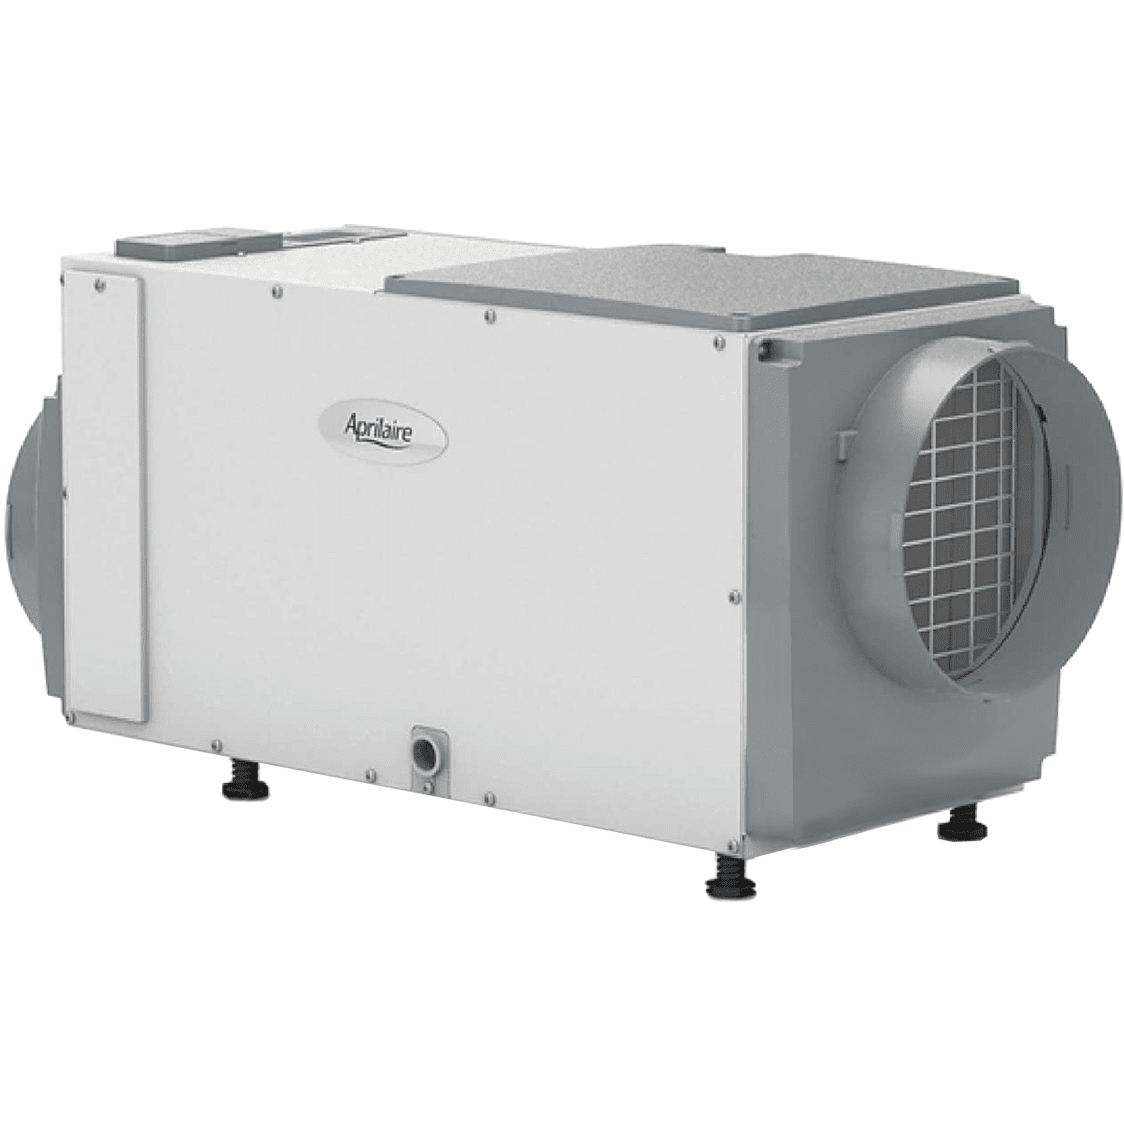 Image of Aprilaire 1870w 130-pint Whole House Dehumidifier